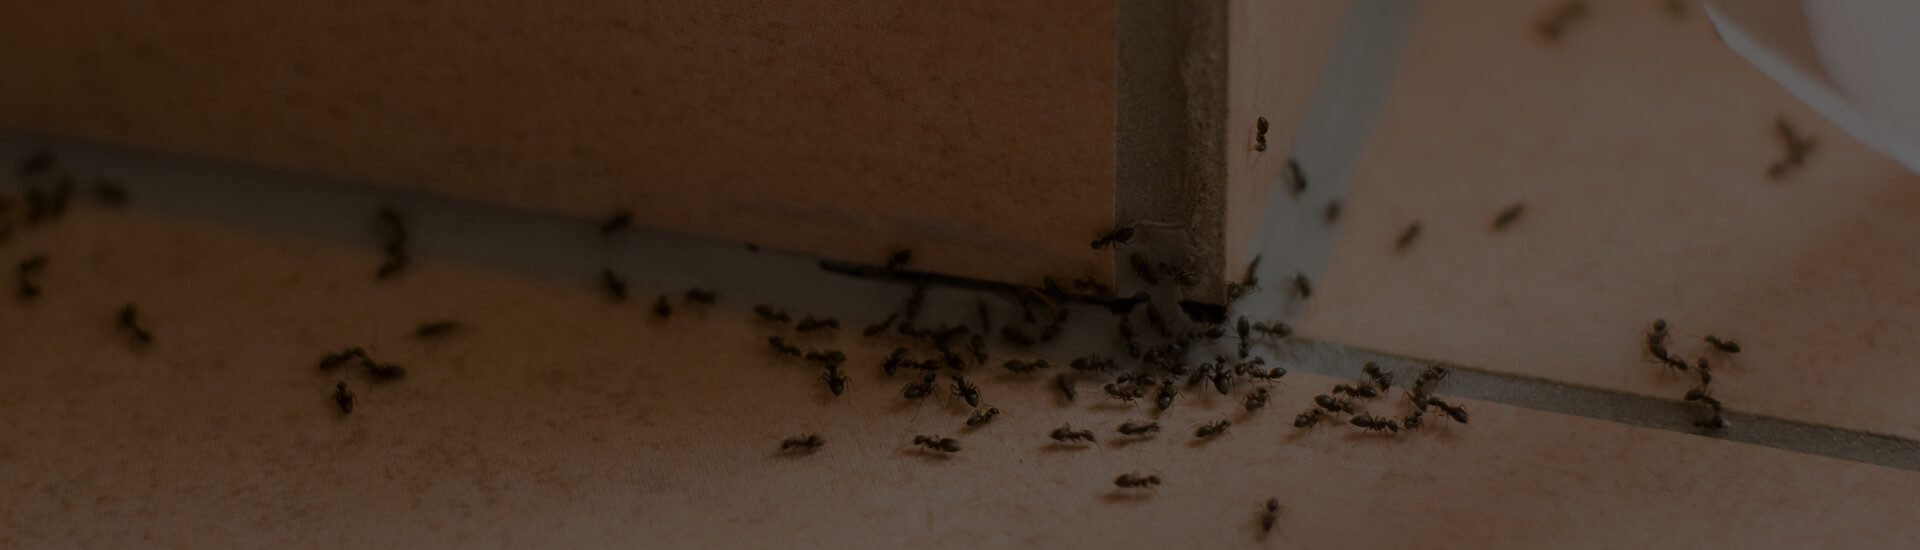 Remove Bugs From Your Home!